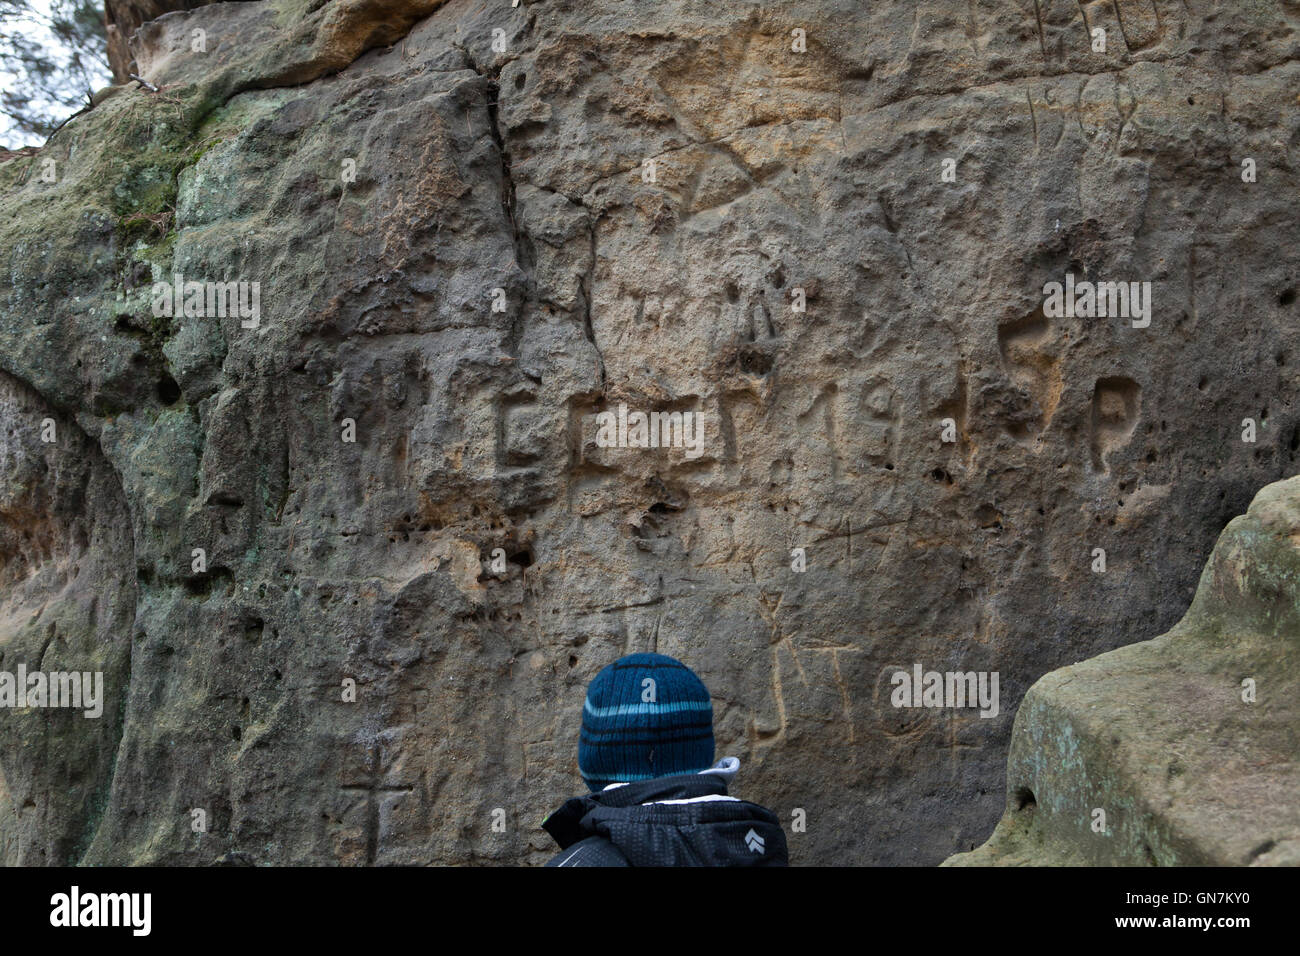 A boy looks at the graffiti carved by Soviet soldiers in 1945 and 1968 in the sandstone rocks in the forest outside - Stock Image